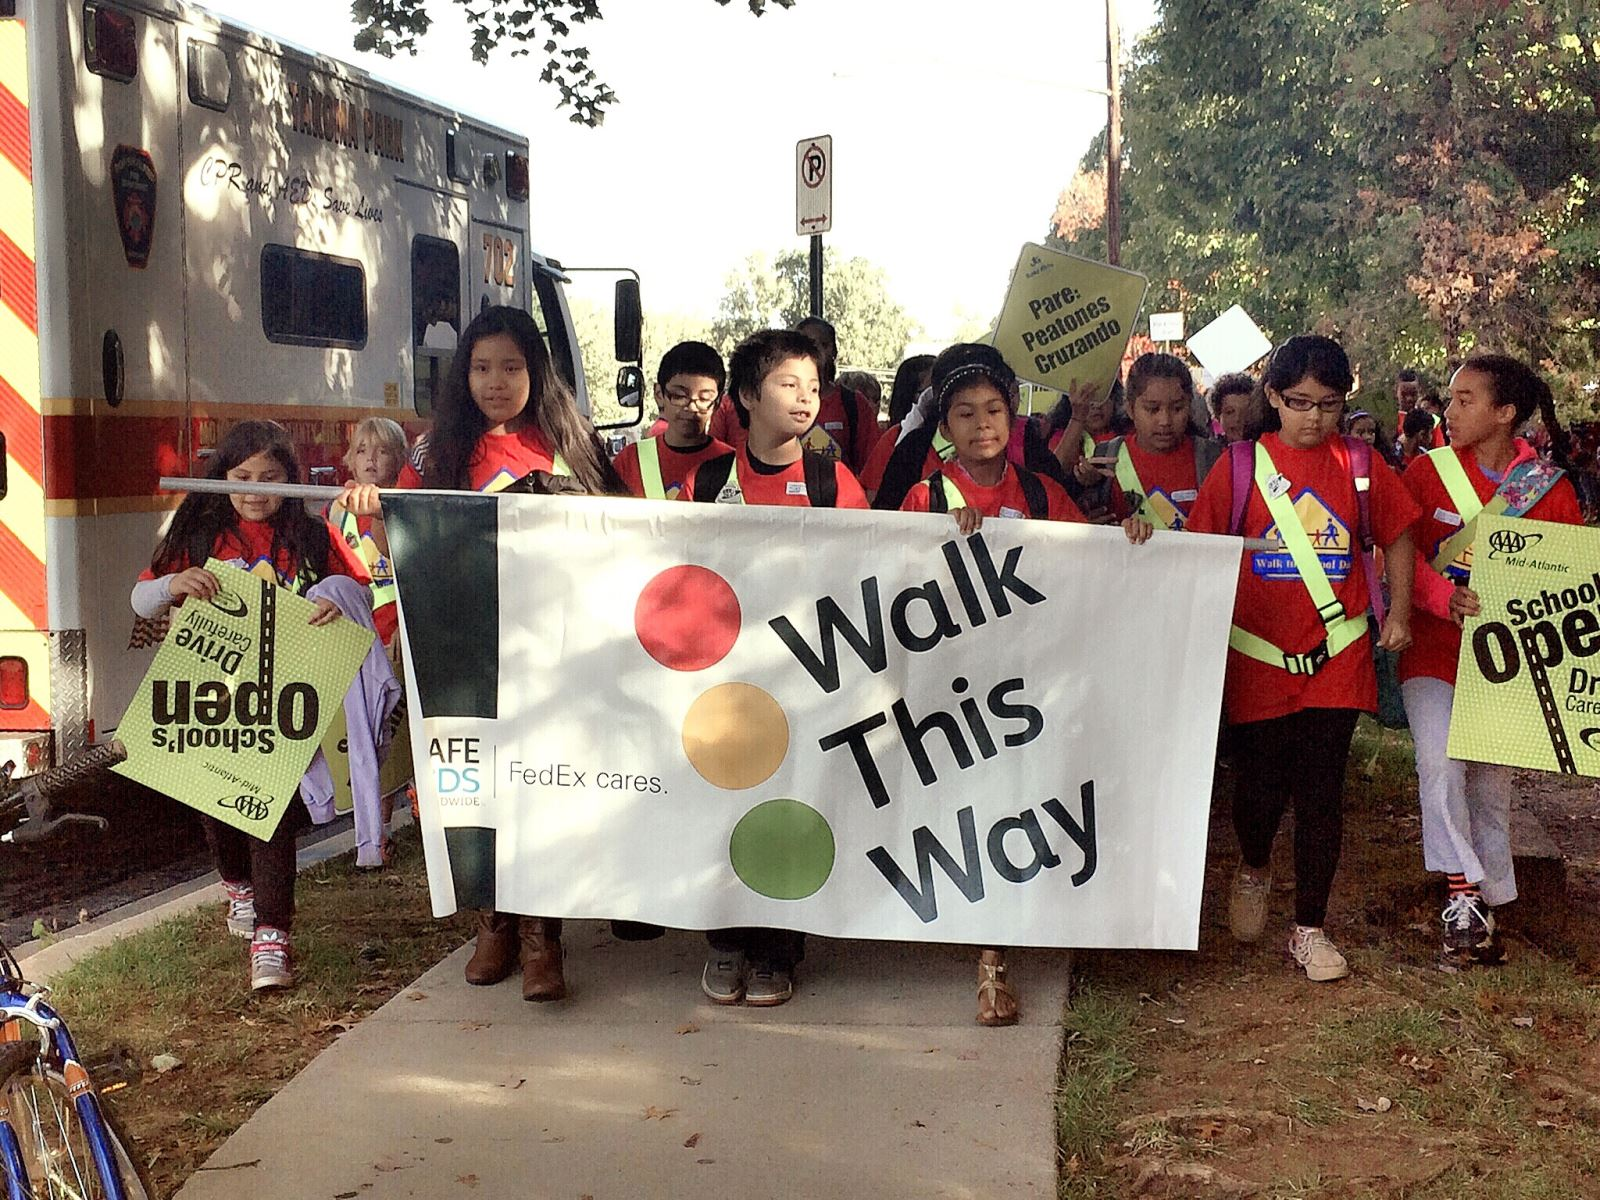 Walk to School Day 2013 at Kensington Parkwood Elementary School